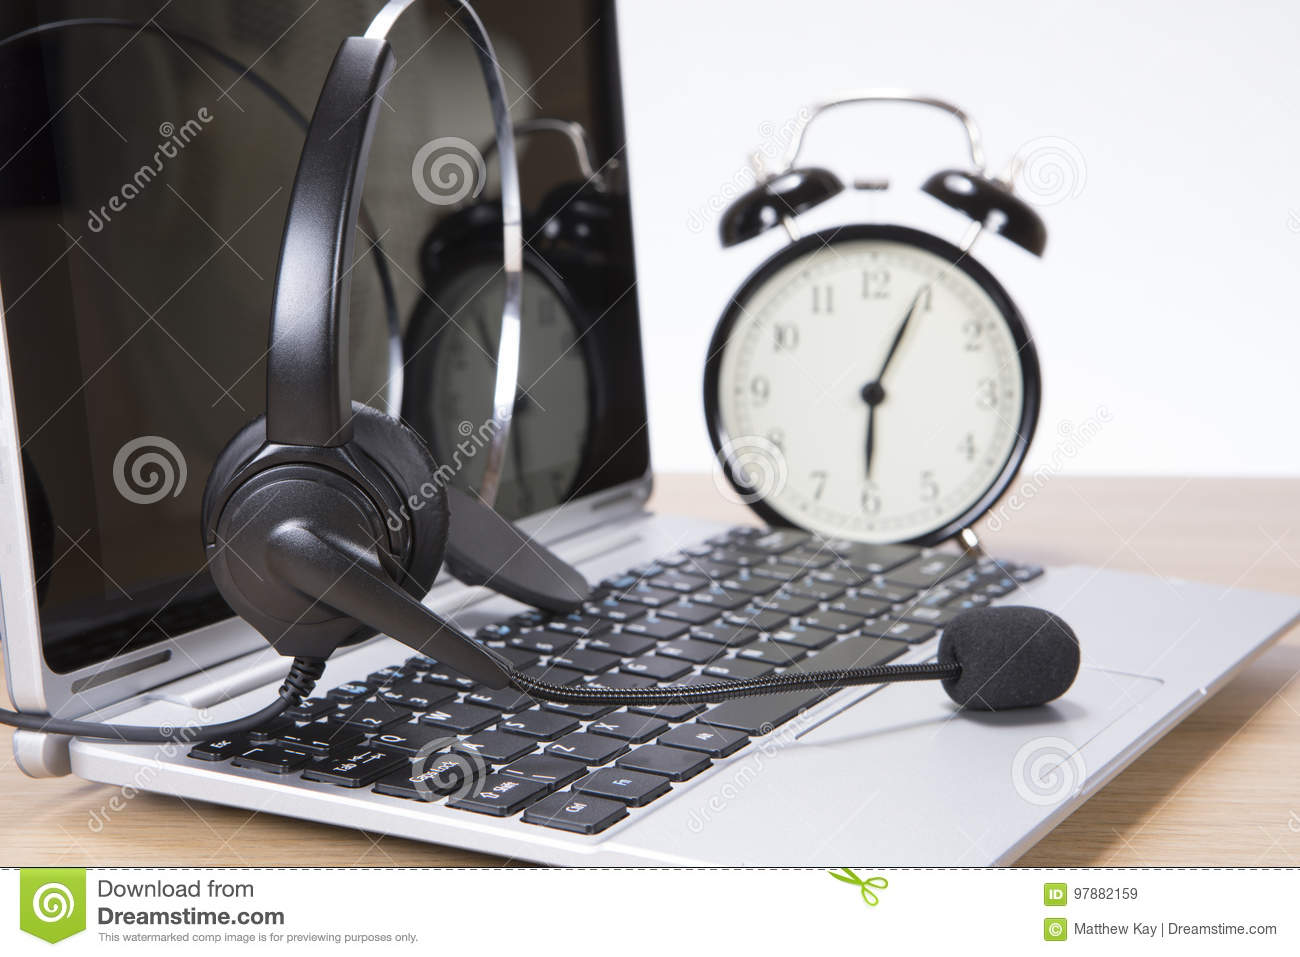 Alarm clock and headset on a laptop computer